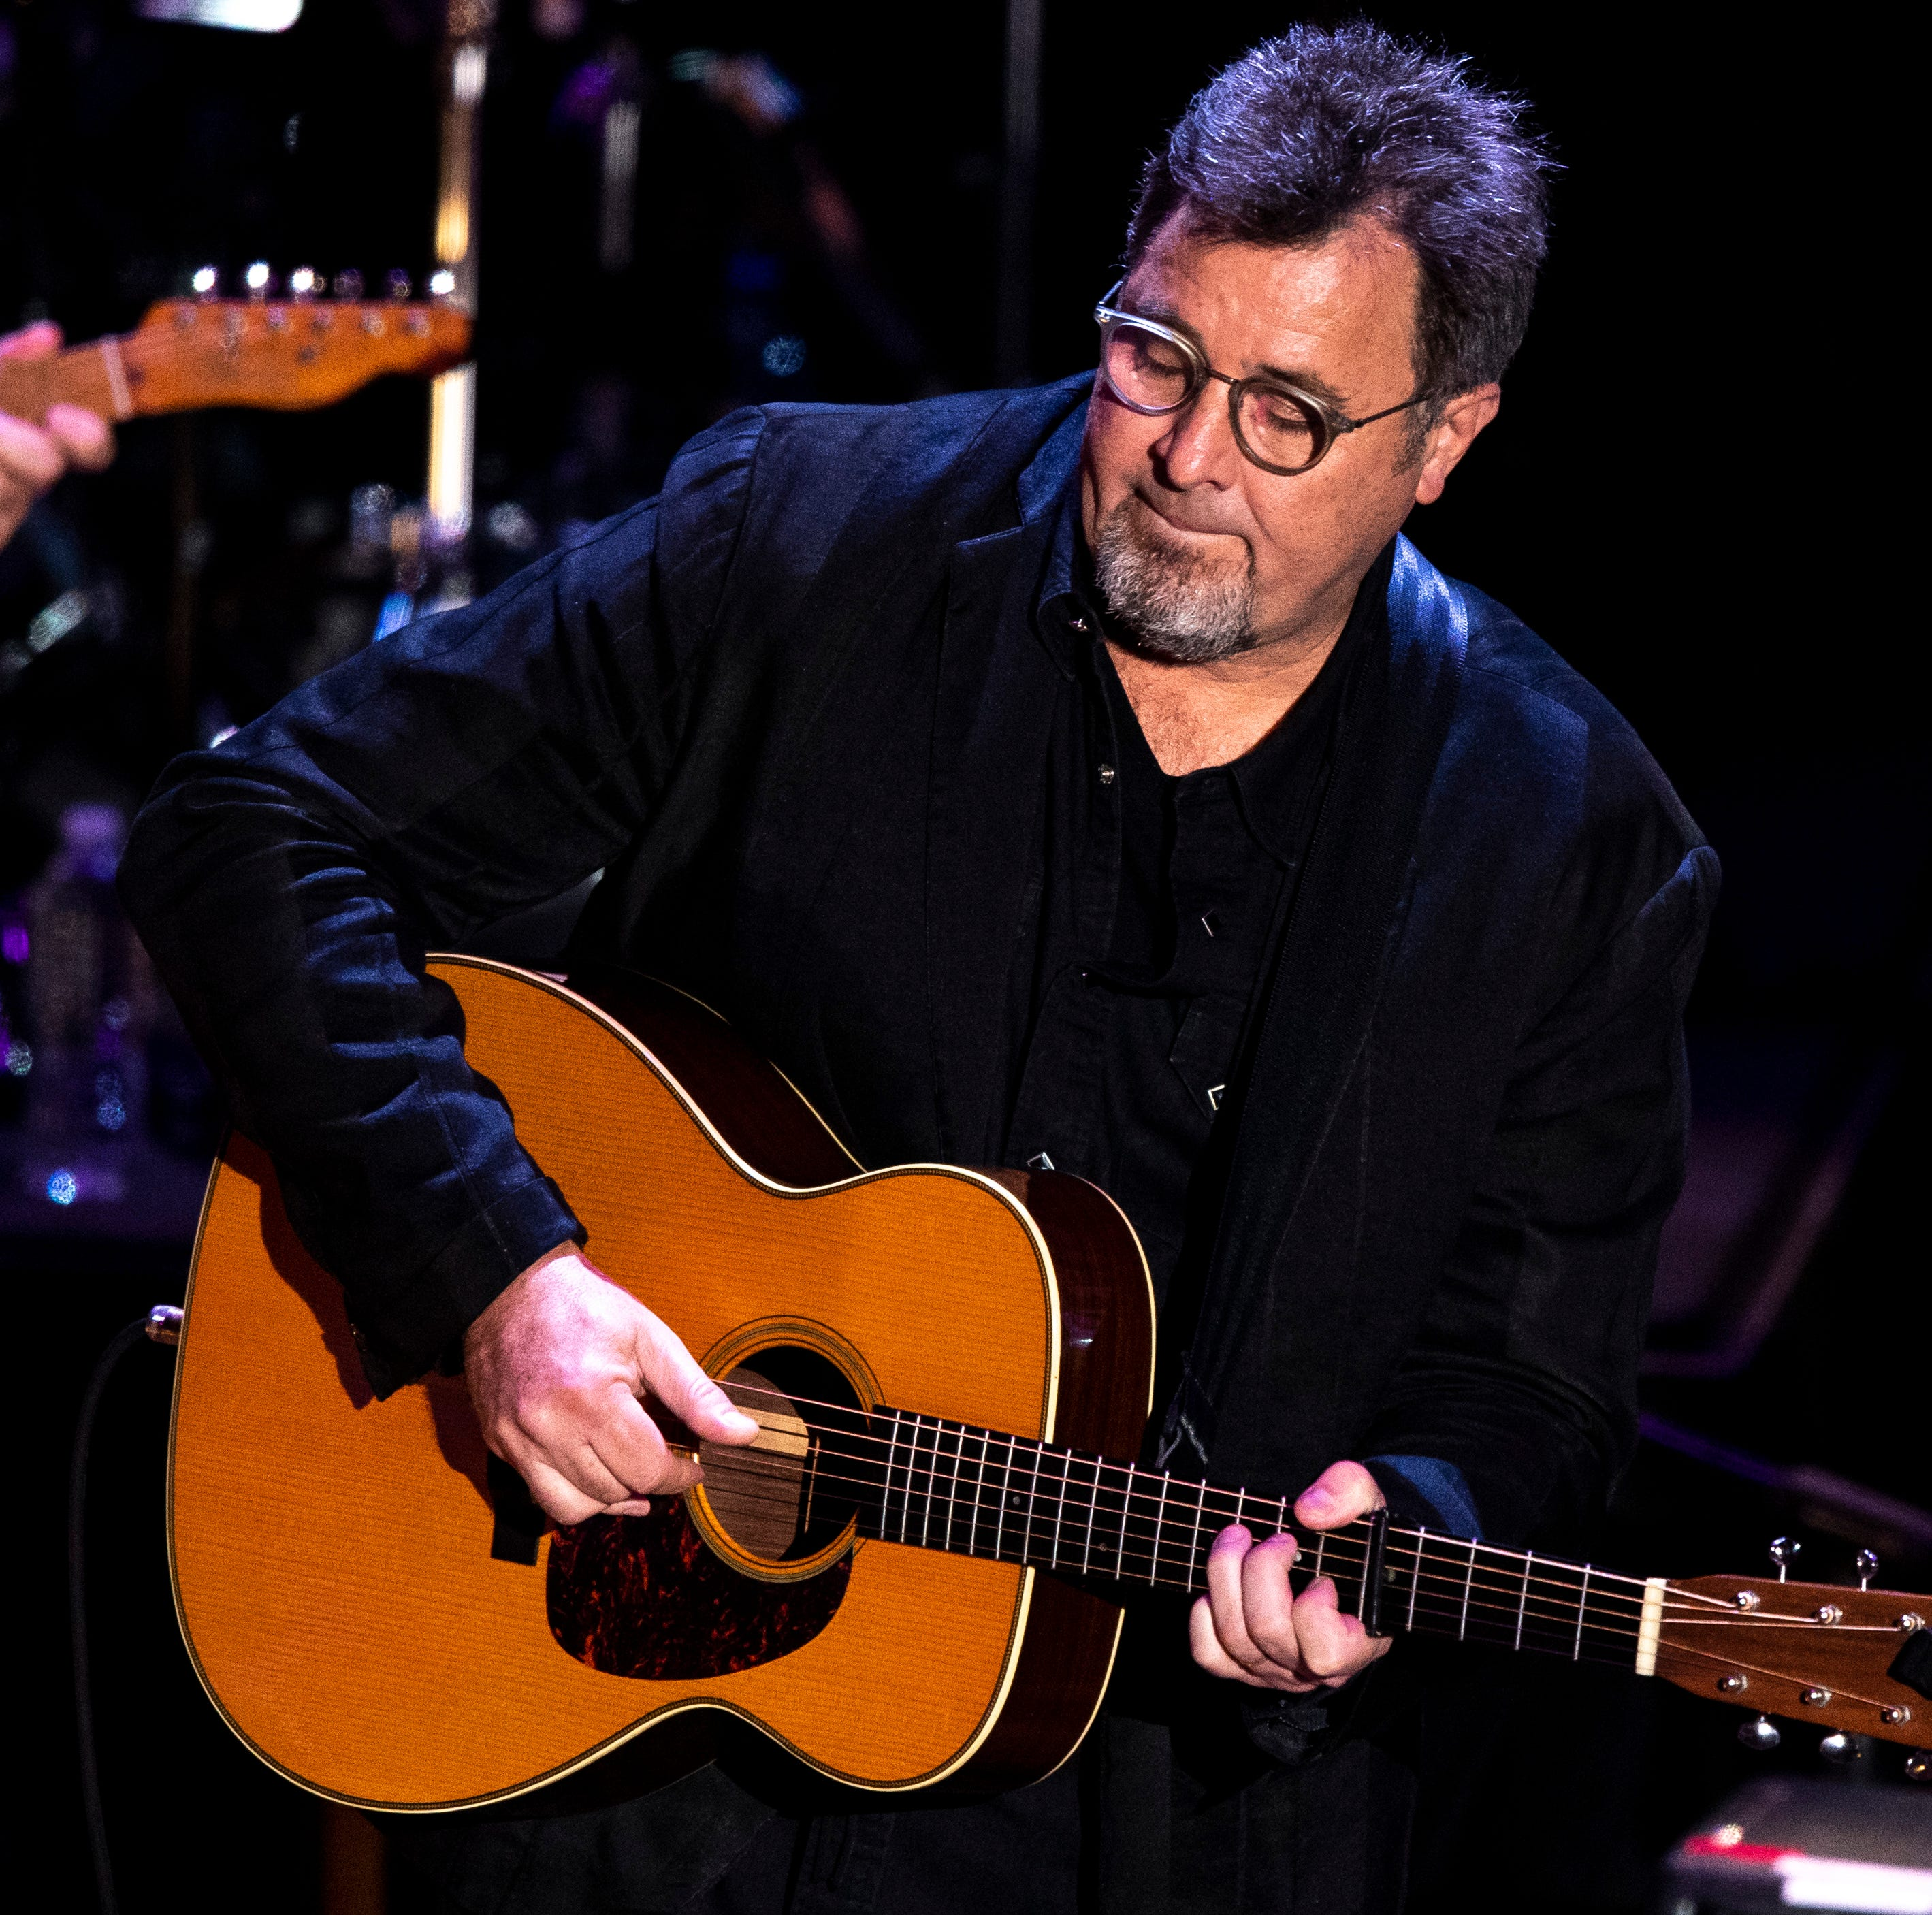 Vince Gill is coming to Knoxville in August. Here's when you need to get your tickets.